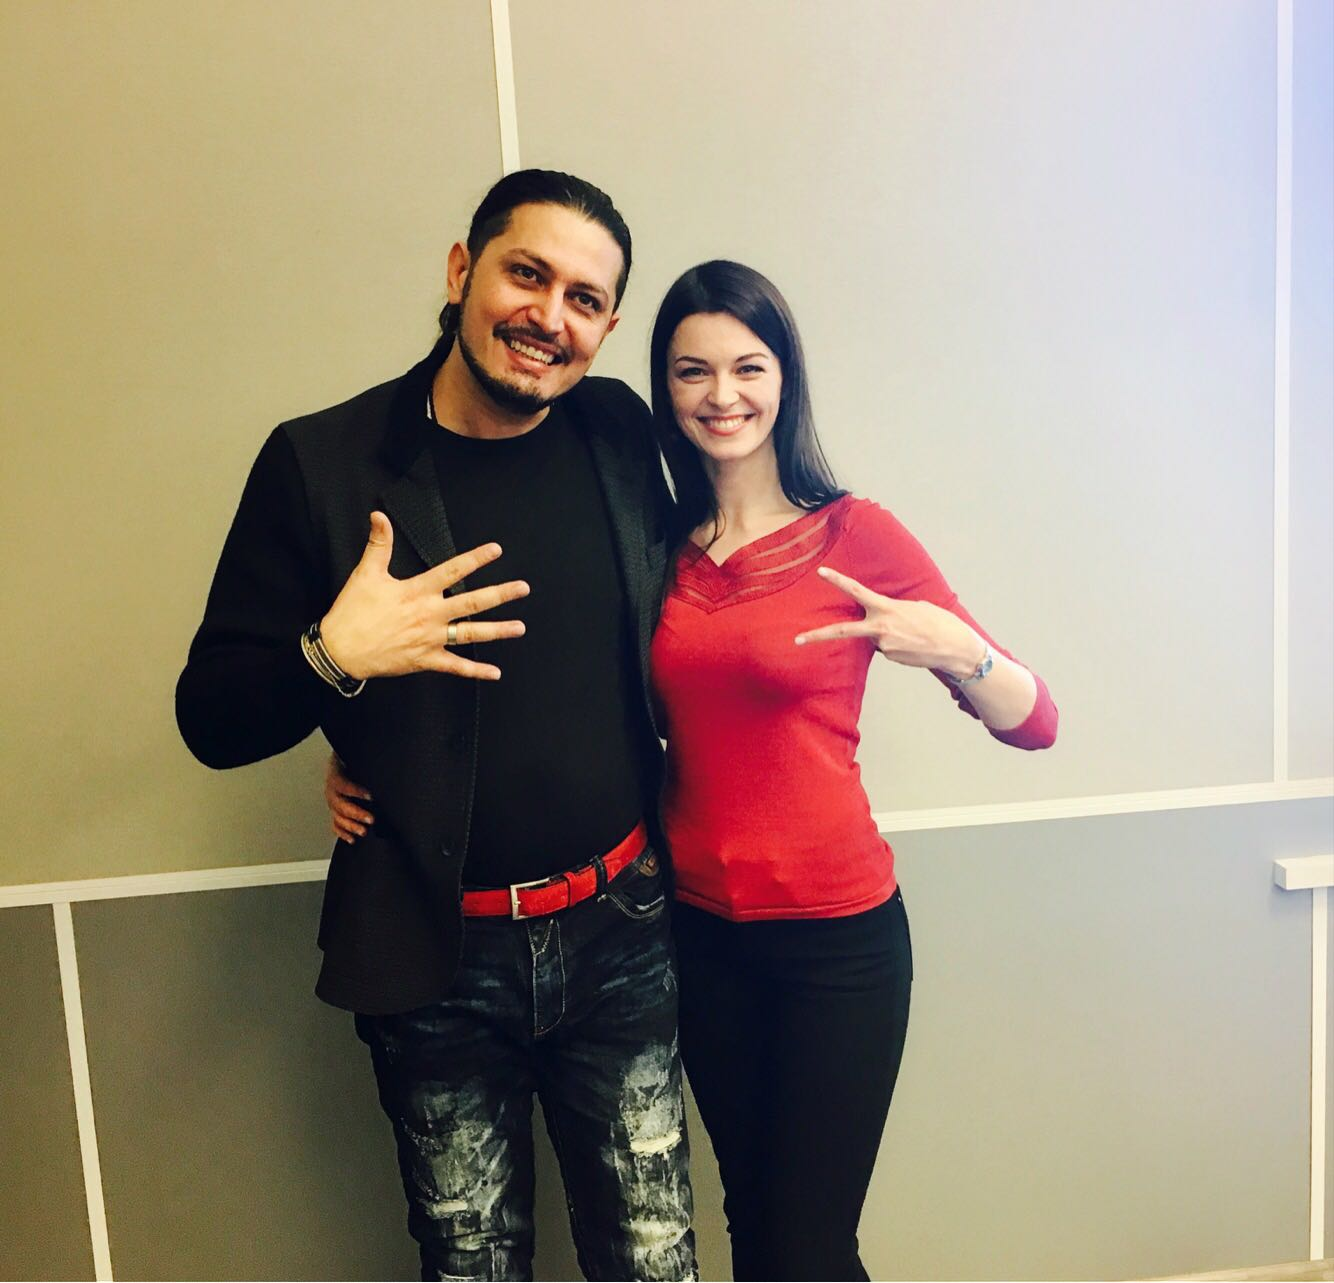 Marco Lo Russo Rouge Sound Production and Gerūta Griniūtė